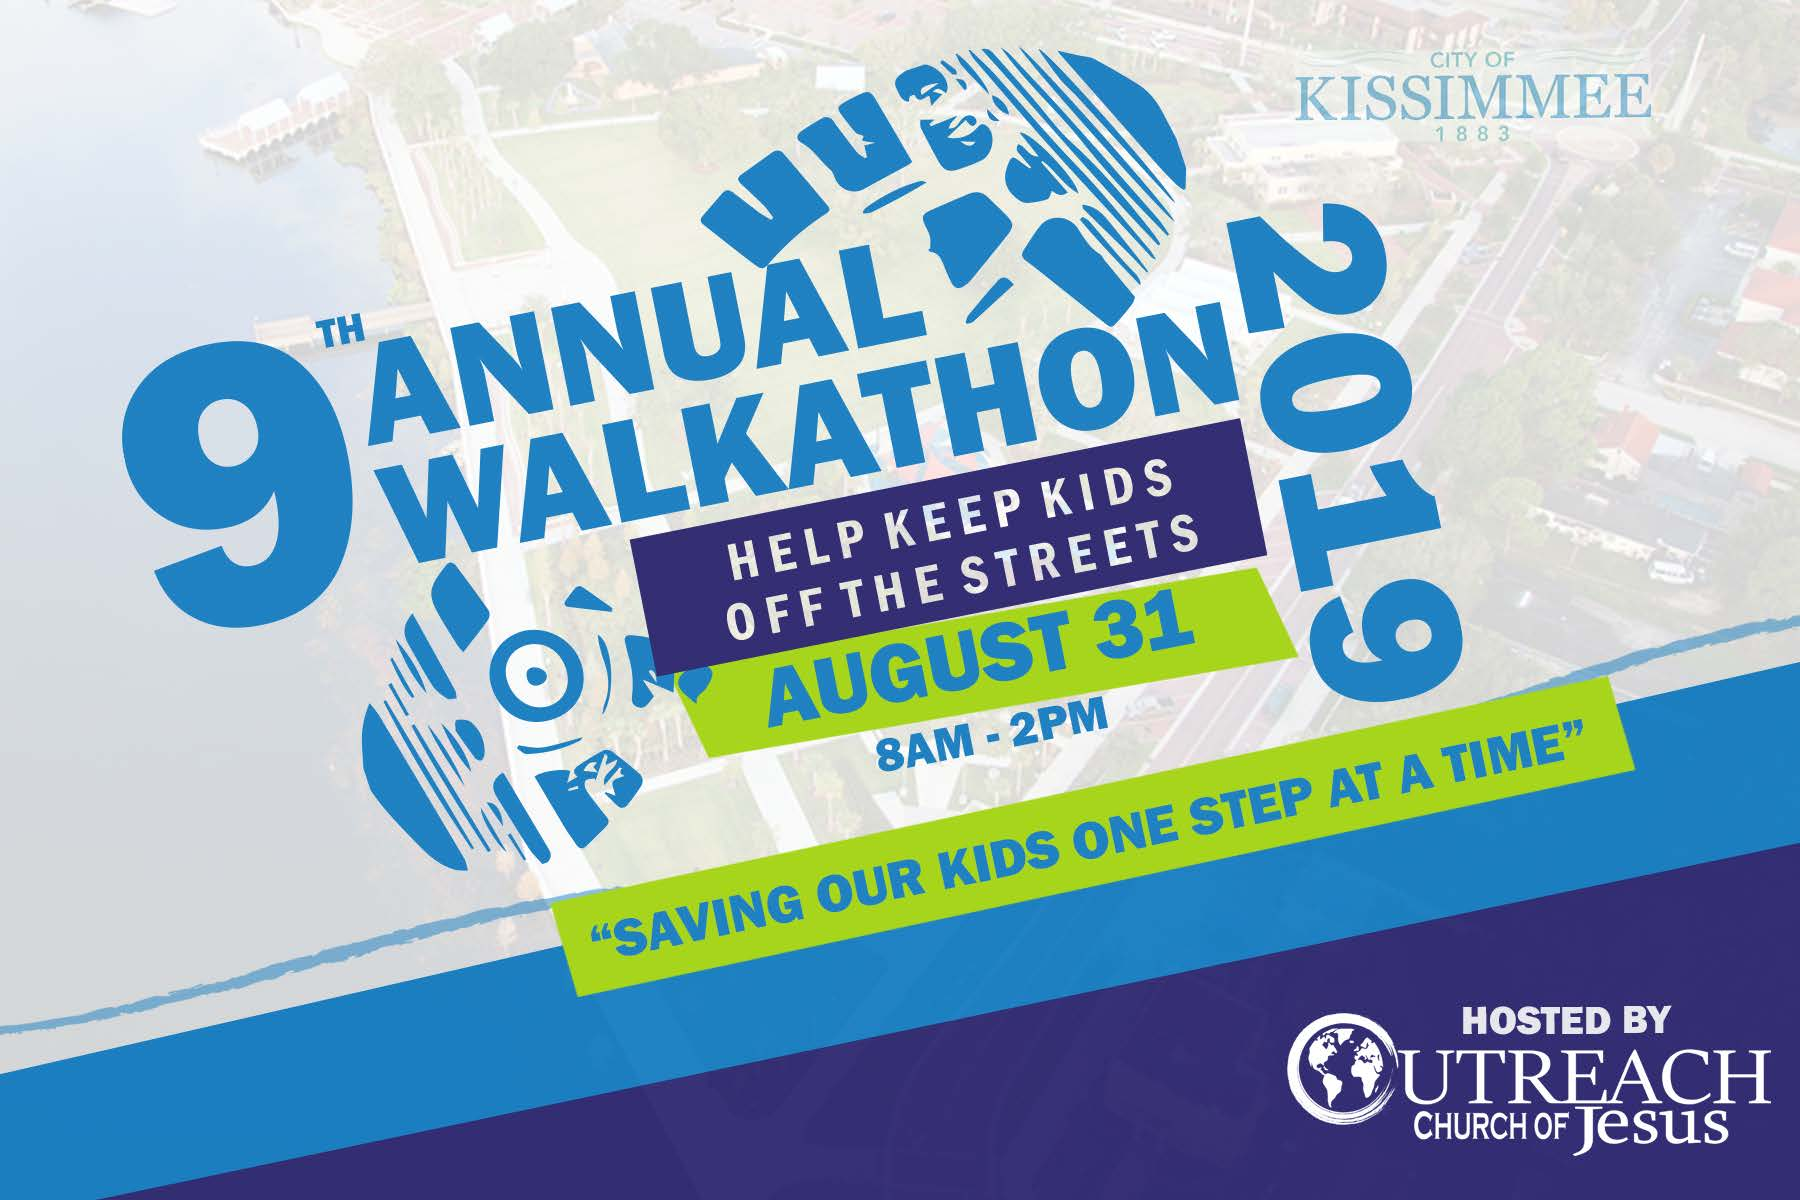 This is a grpaphic for the event HElp Keep Kids Off The Street walk-a-thon, held at Kissimmee Lakefront Park on August 31, 2019.